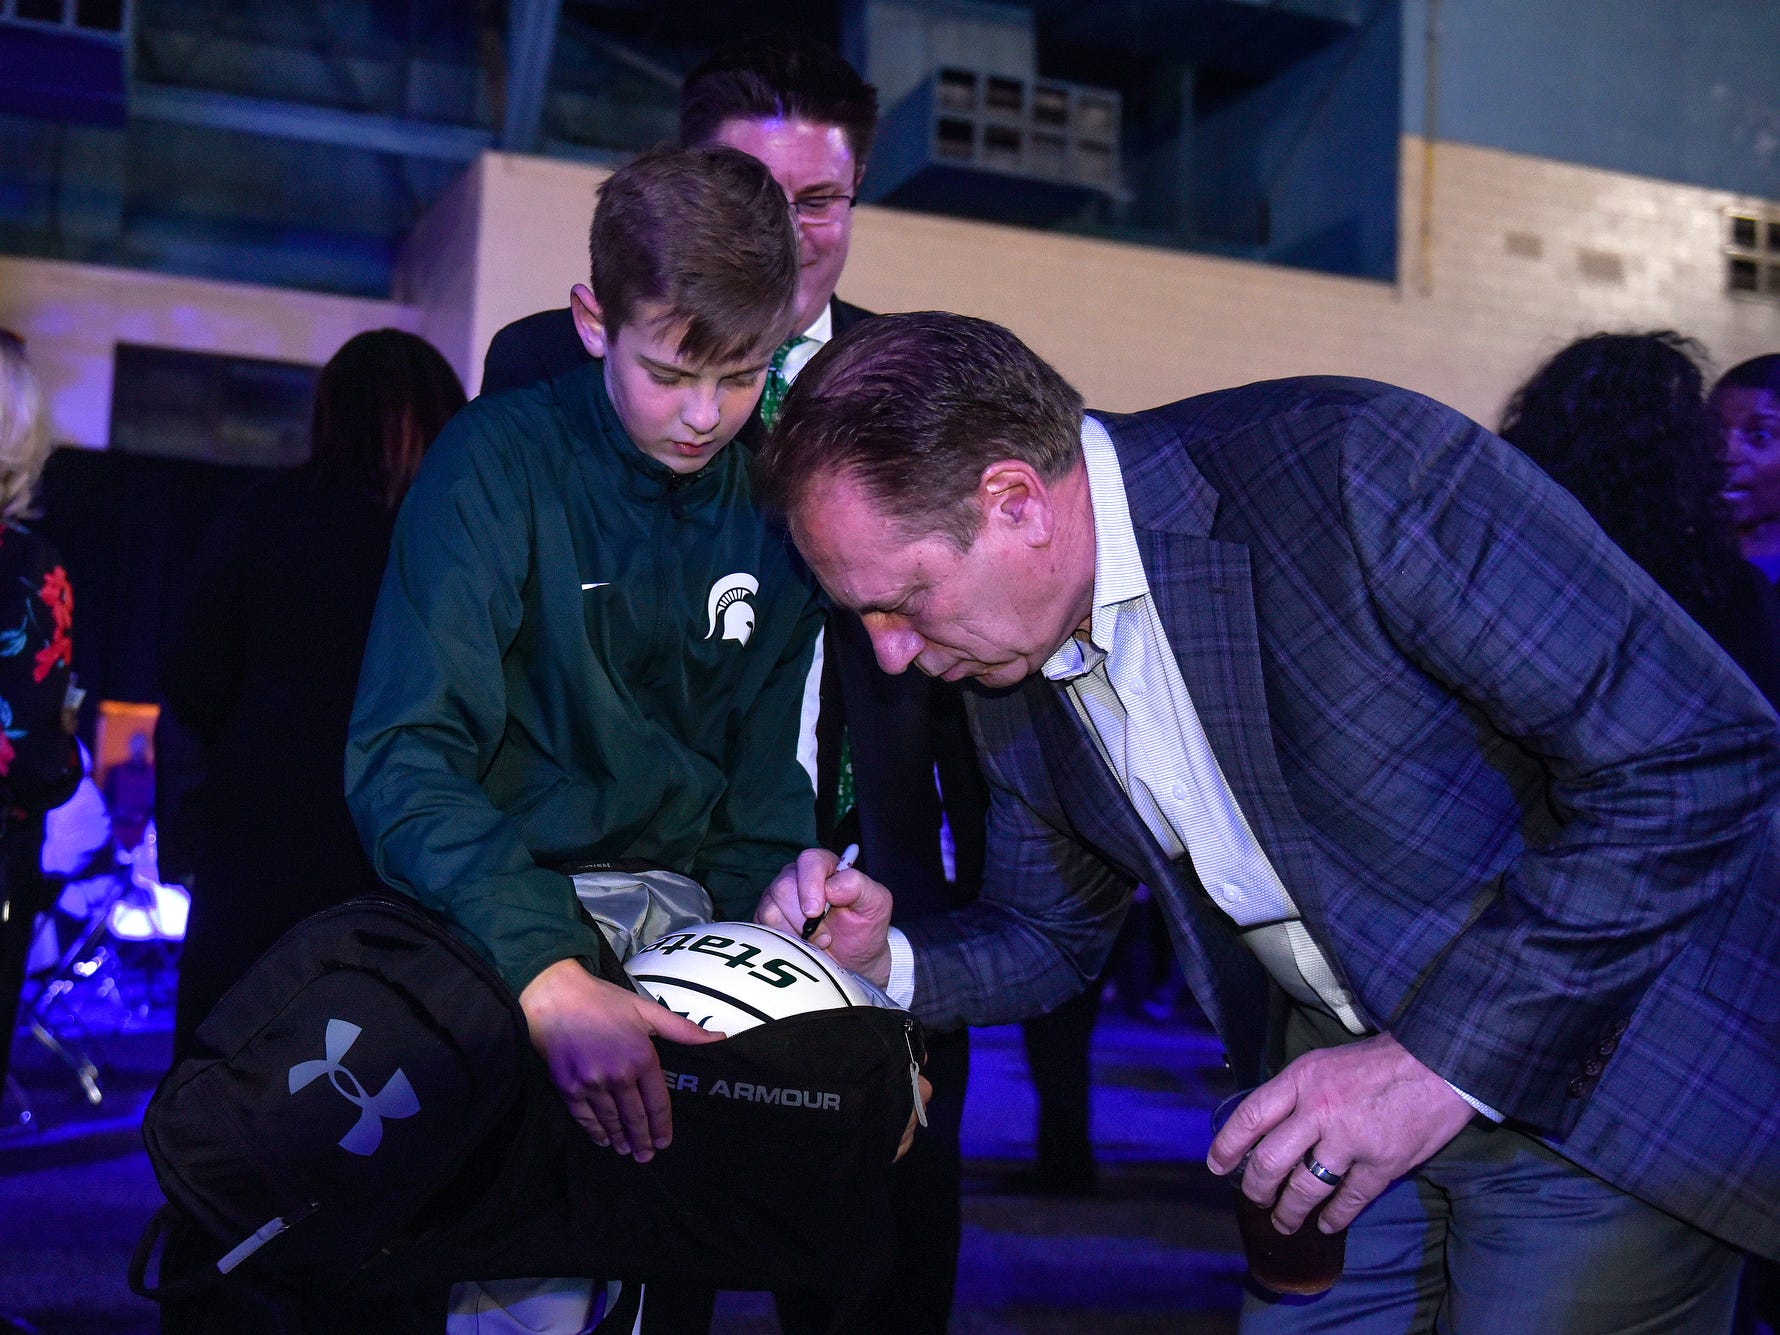 Michigan State University men's basketball coach Tom Izzo, right, signs a basketball for Ben Sumnar, 13, during the fifth-annual Lansing Promise Dinner on Thursday, April 25, 2019, at the Don Johnson Fieldhouse in Lansing. Ben was attending the event with his father Mike who is a supporter of the cause.